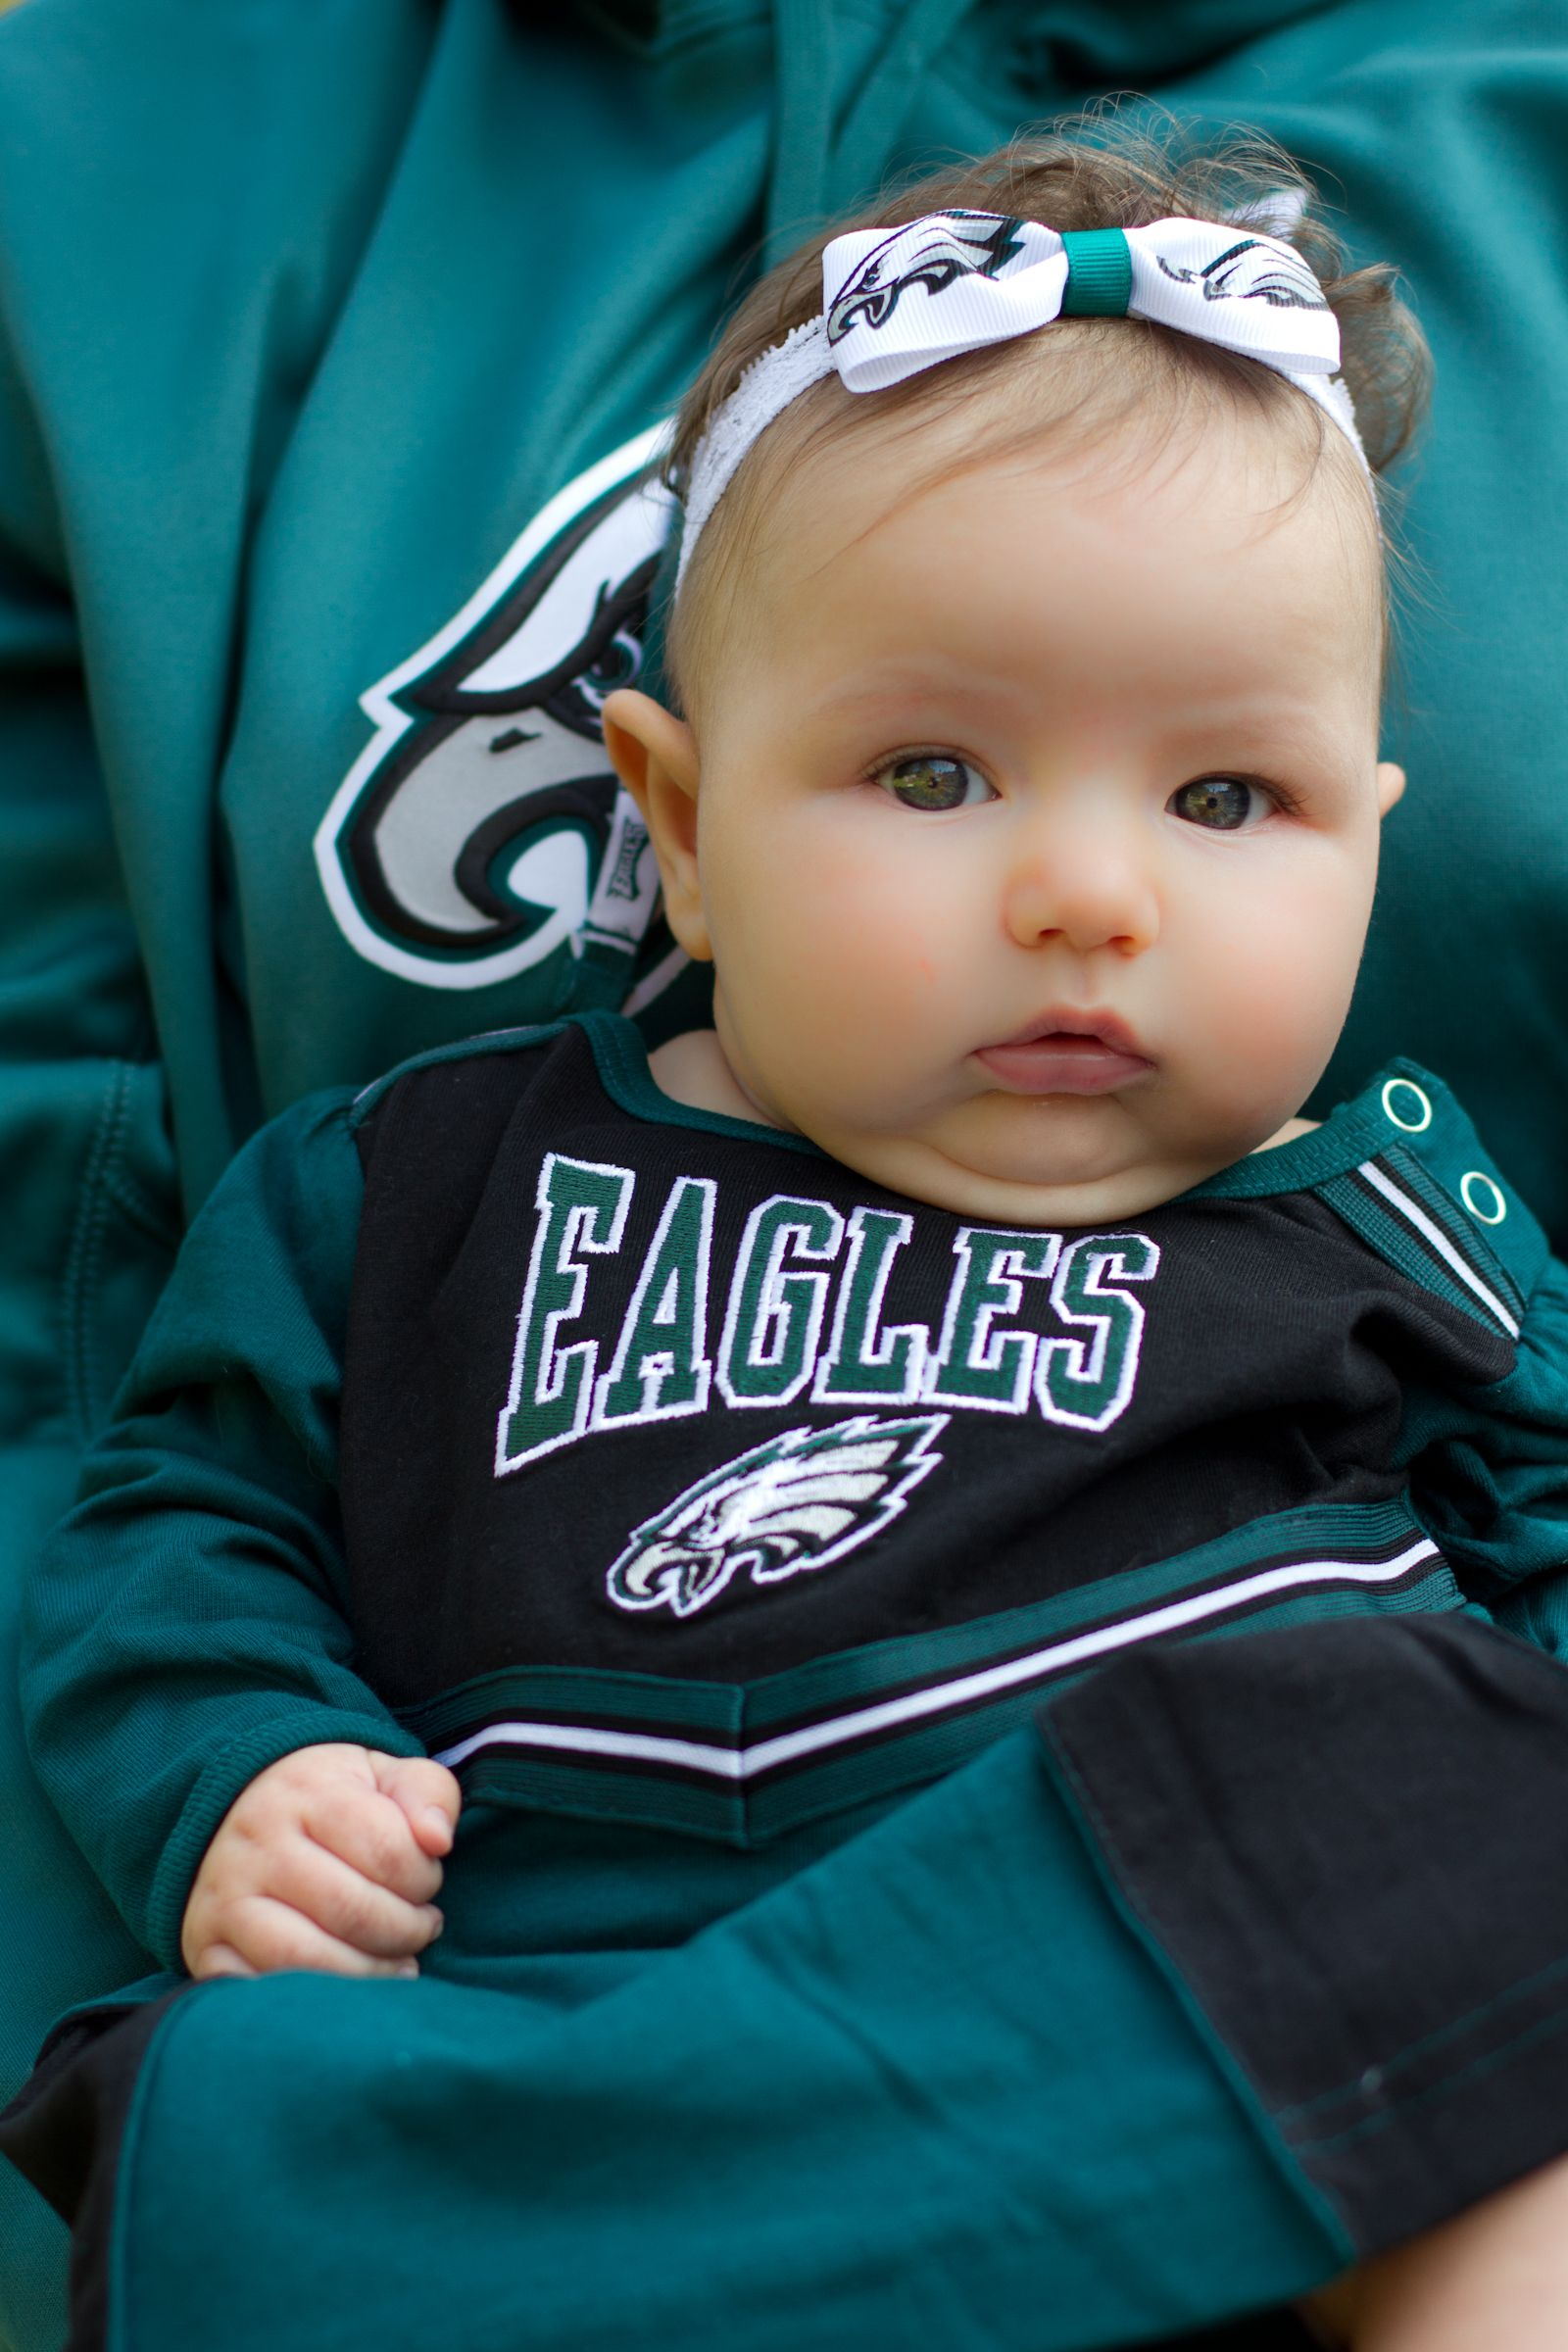 child eagles jersey